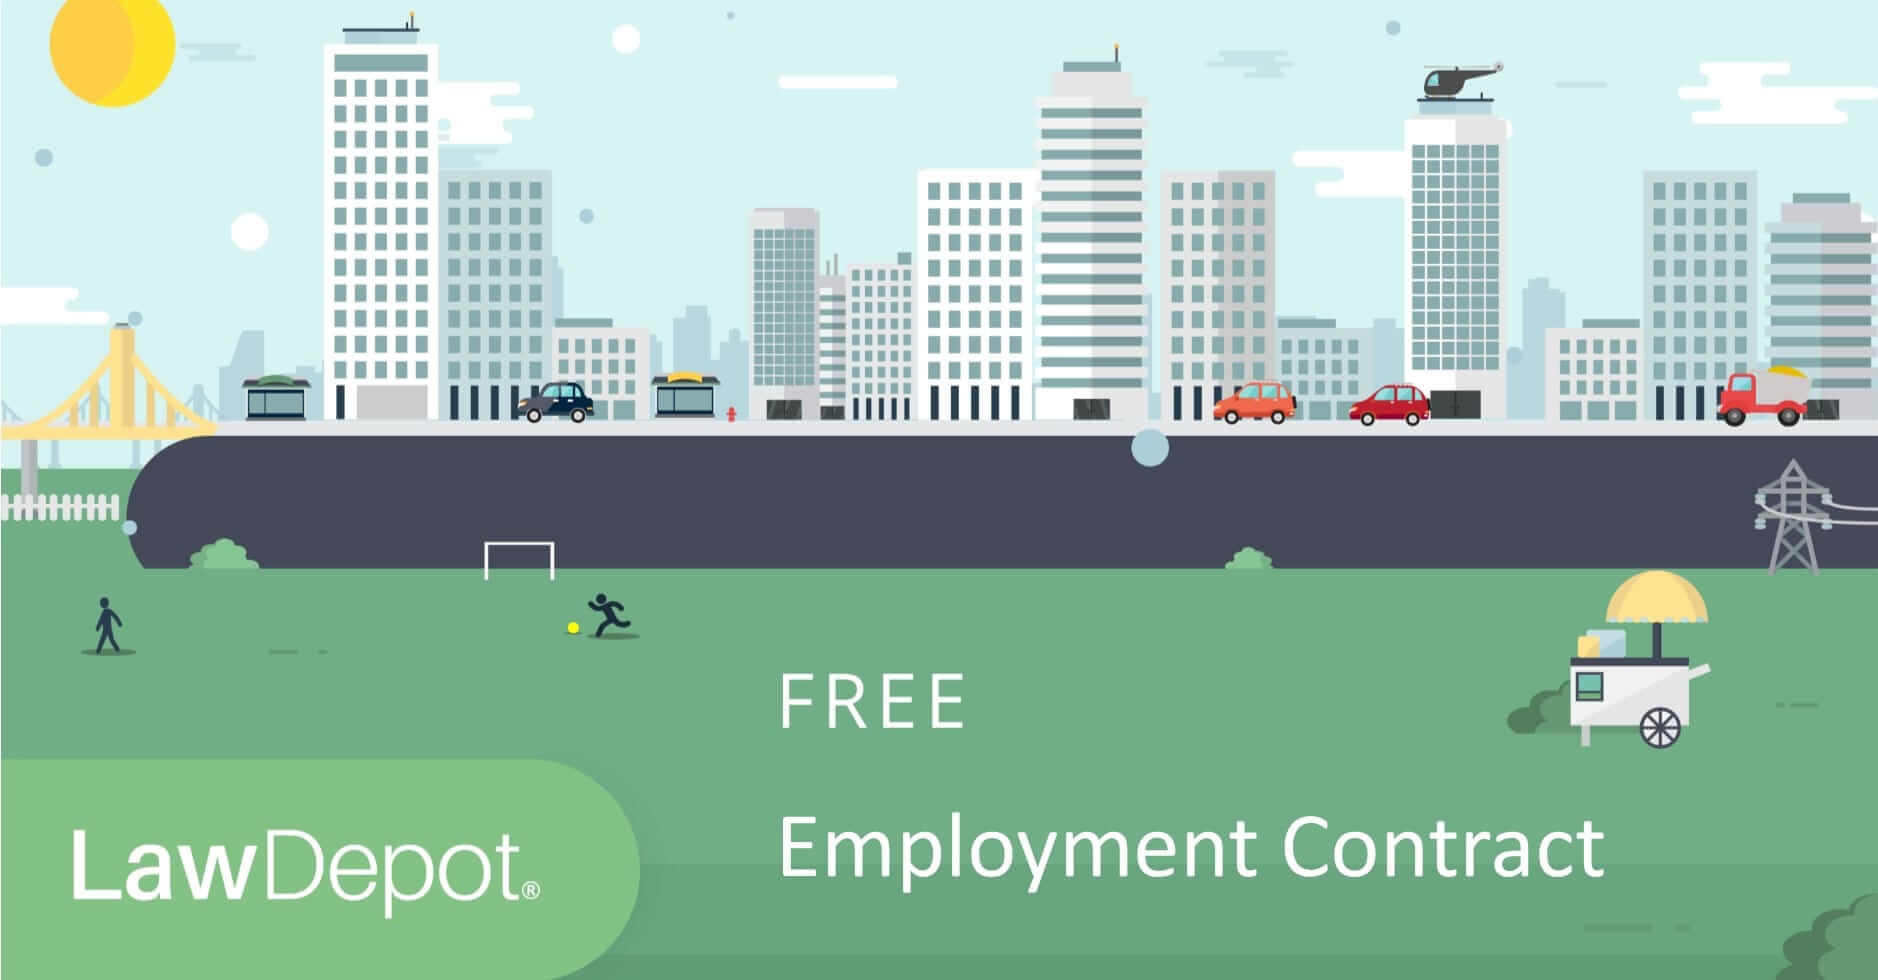 Free Employment Contract - Create, Download, and Print